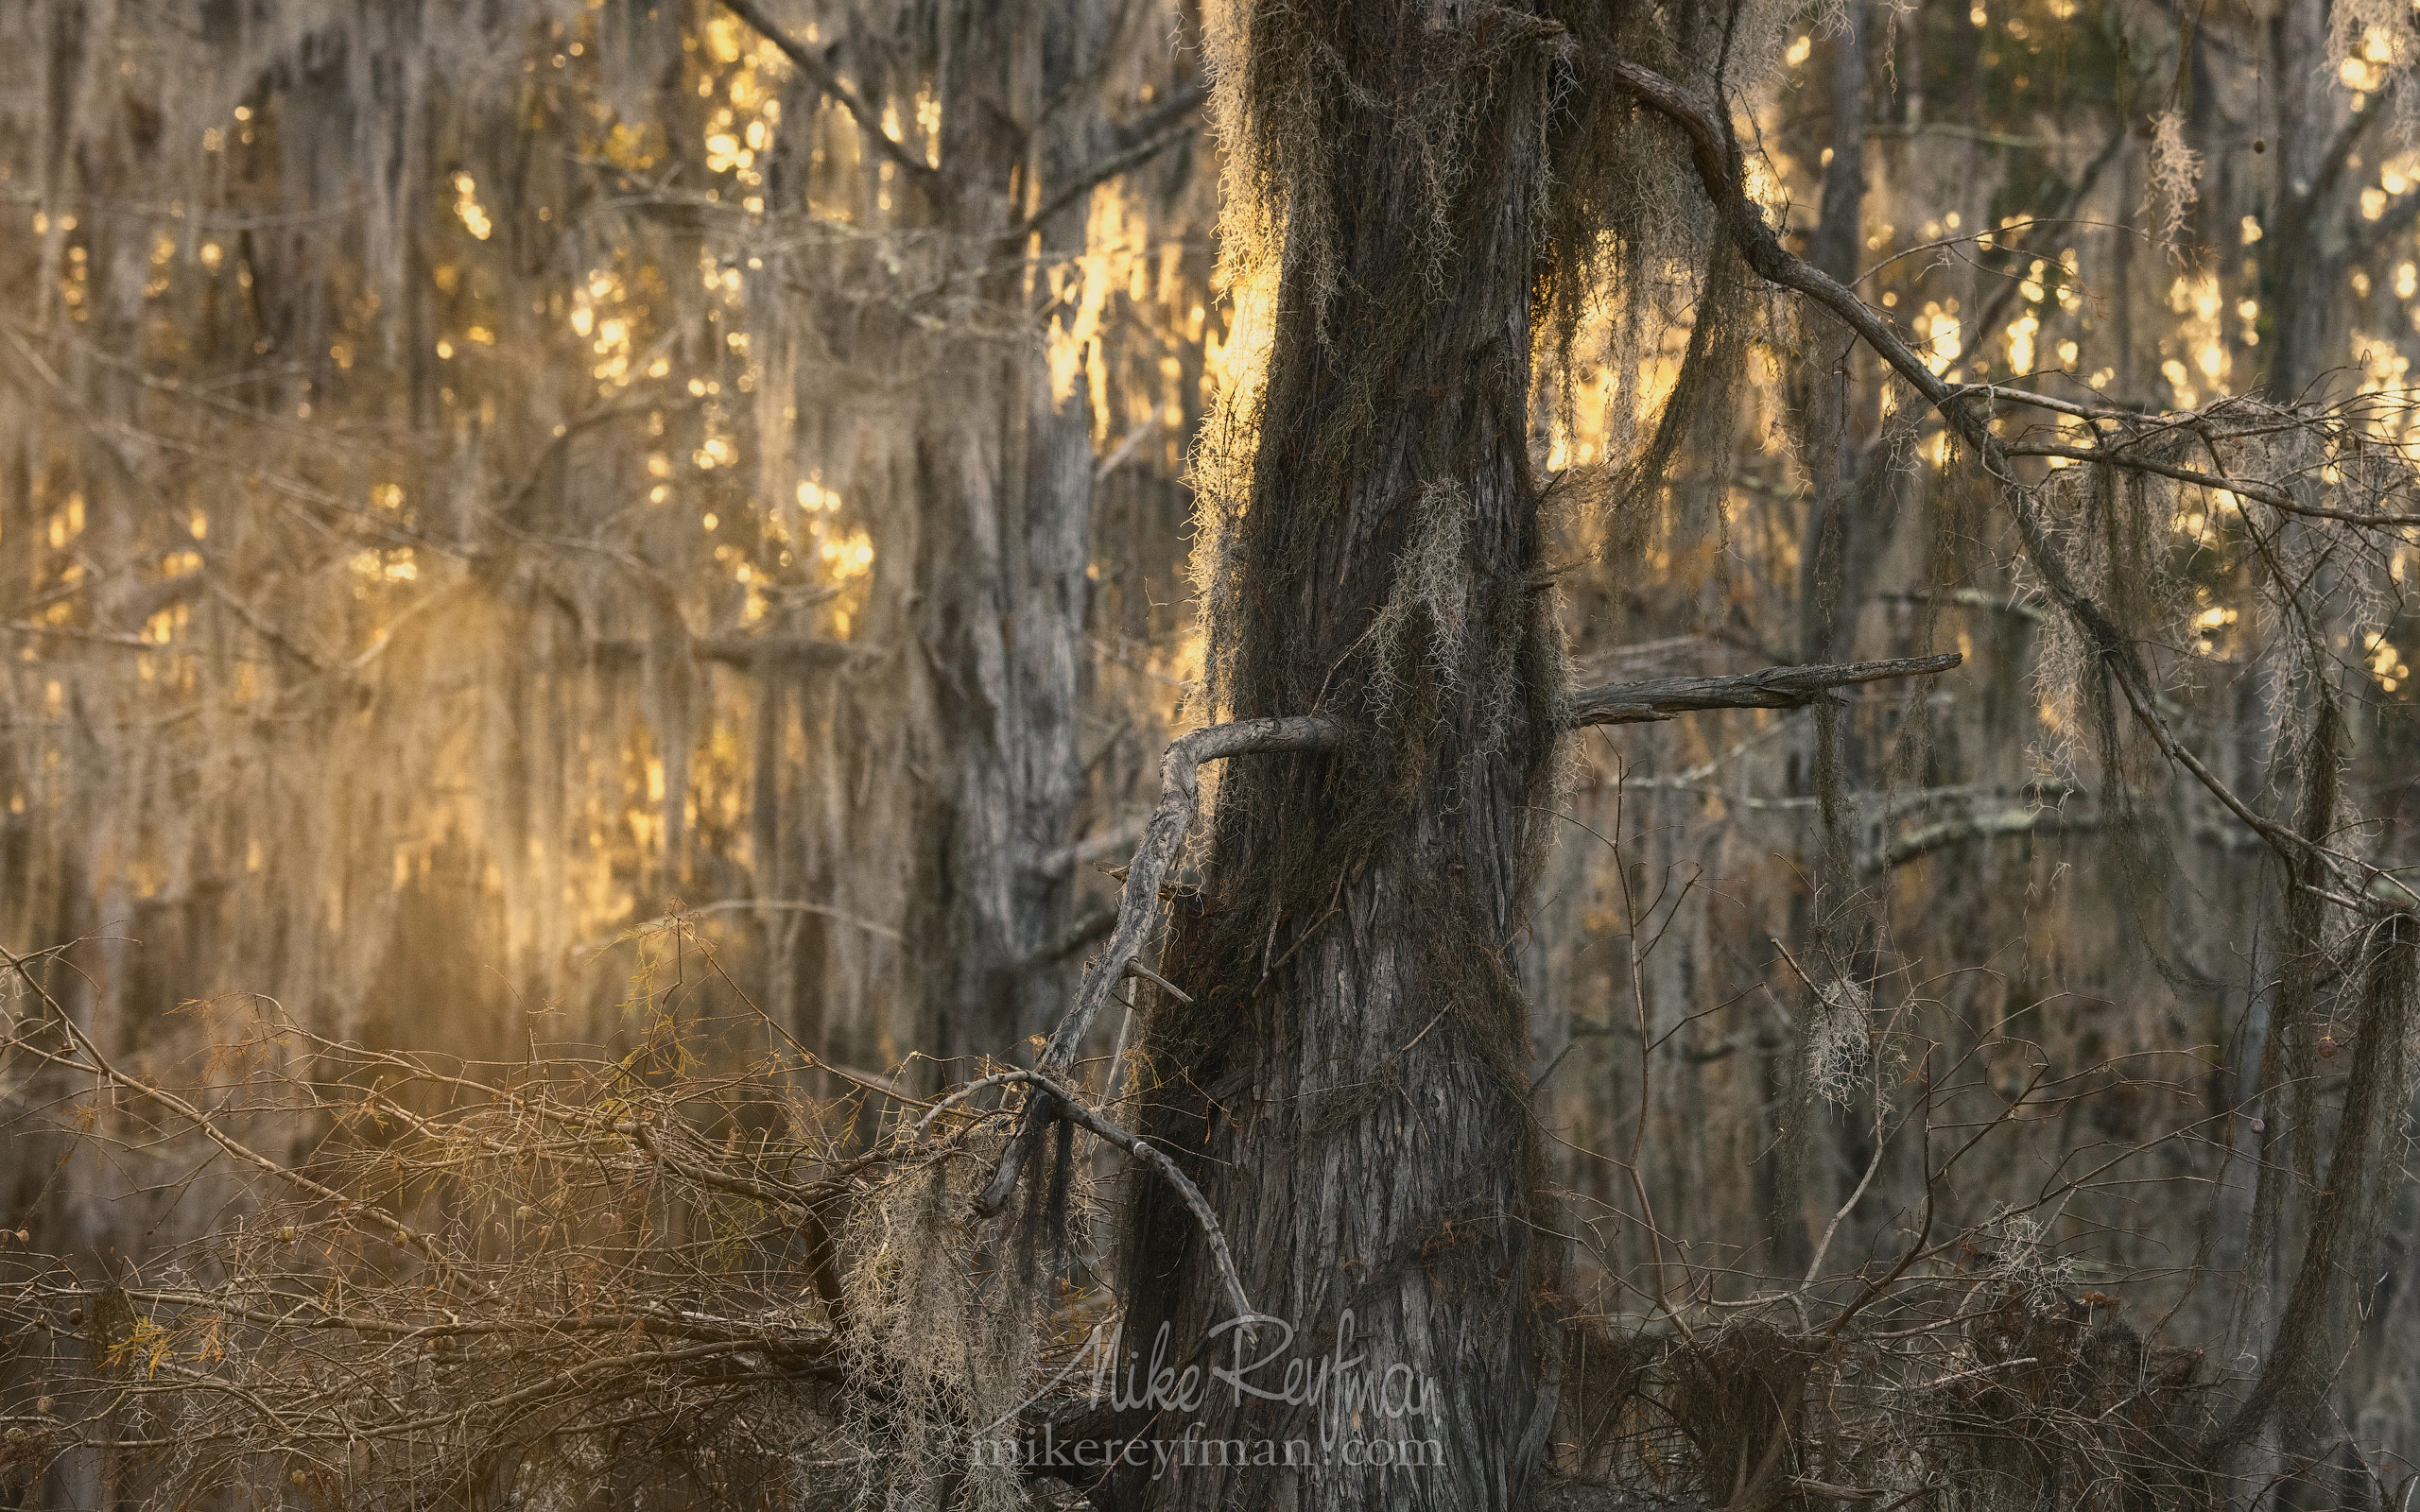 Bald Cypress trees and Spanish Moss. Caddo Lake, Texas, US 032-LT1-50A3337.jpg - Bold Cypress and Tupelo Trees in the swamps of Atchafalaya River Basin. Caddo, Martin and Fousse Lakes. Texas/Louisiana, USA. - Mike Reyfman Photography